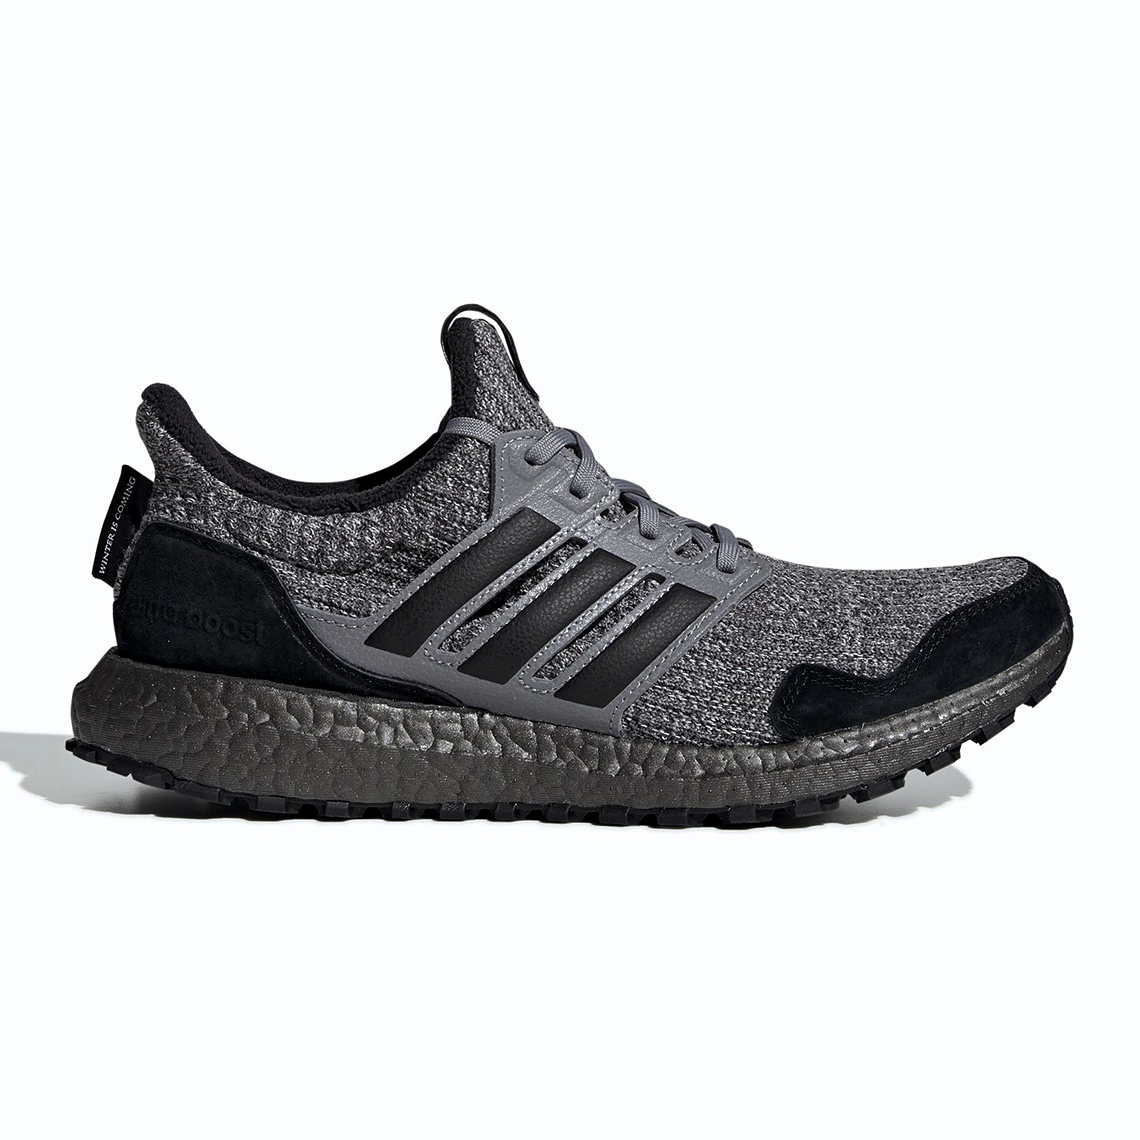 Game Of Thrones x adidas UltraBOOST «House Stark»